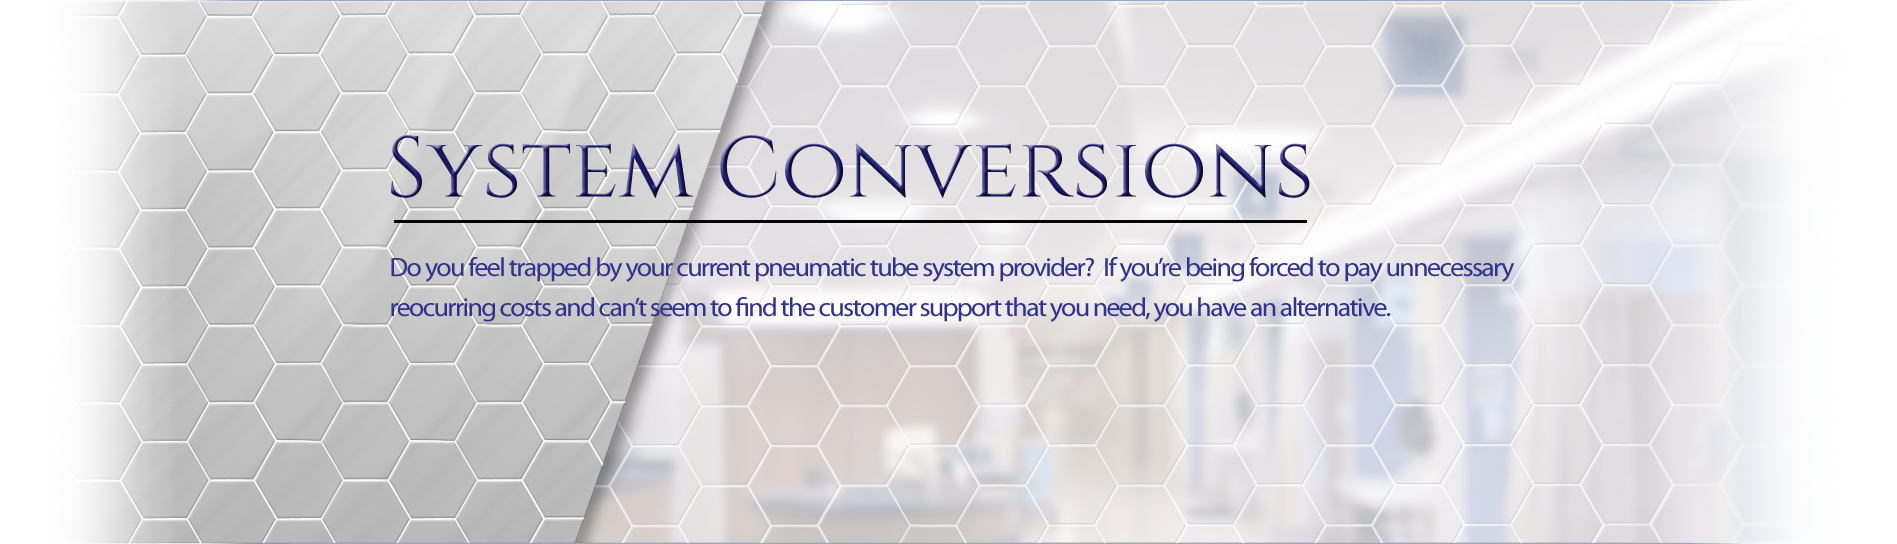 Do you feel trapped by your current pneumatic tube system provider? If you're being forced to pay unnecessary reoccurring costs and can't seem to find the customer support that you need, you have an alternative.